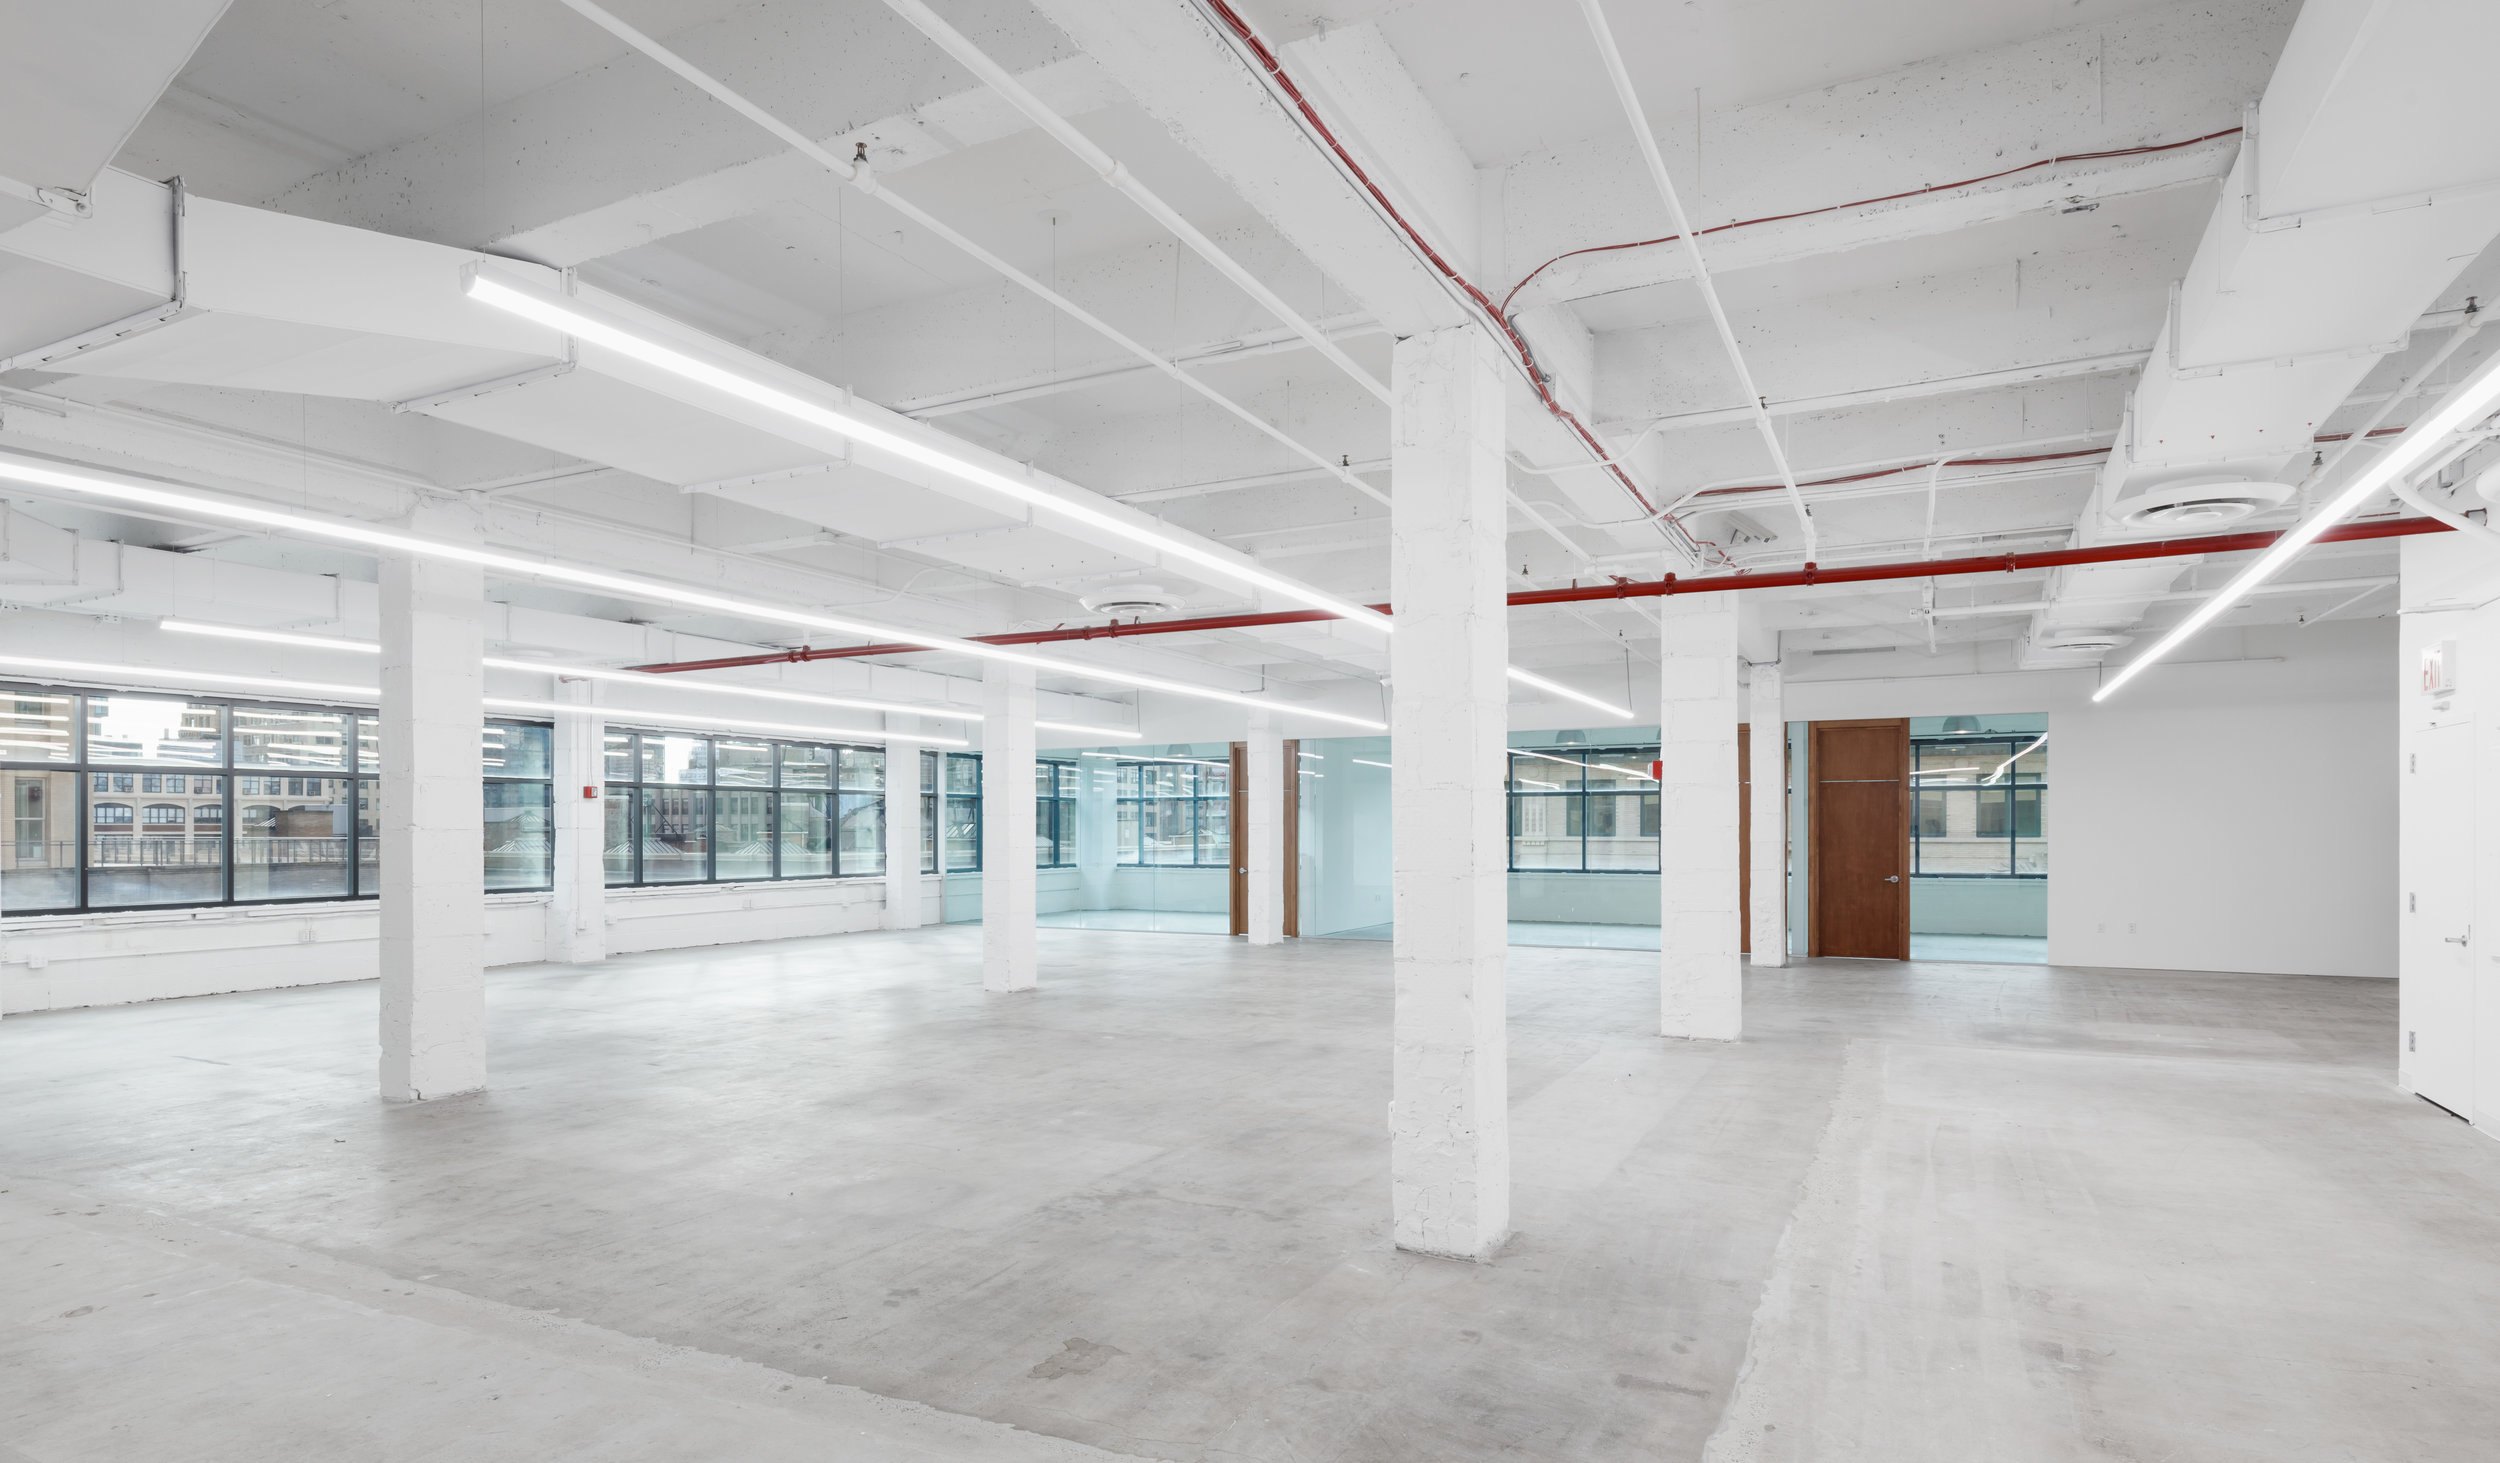 Raw Vacant Office Space